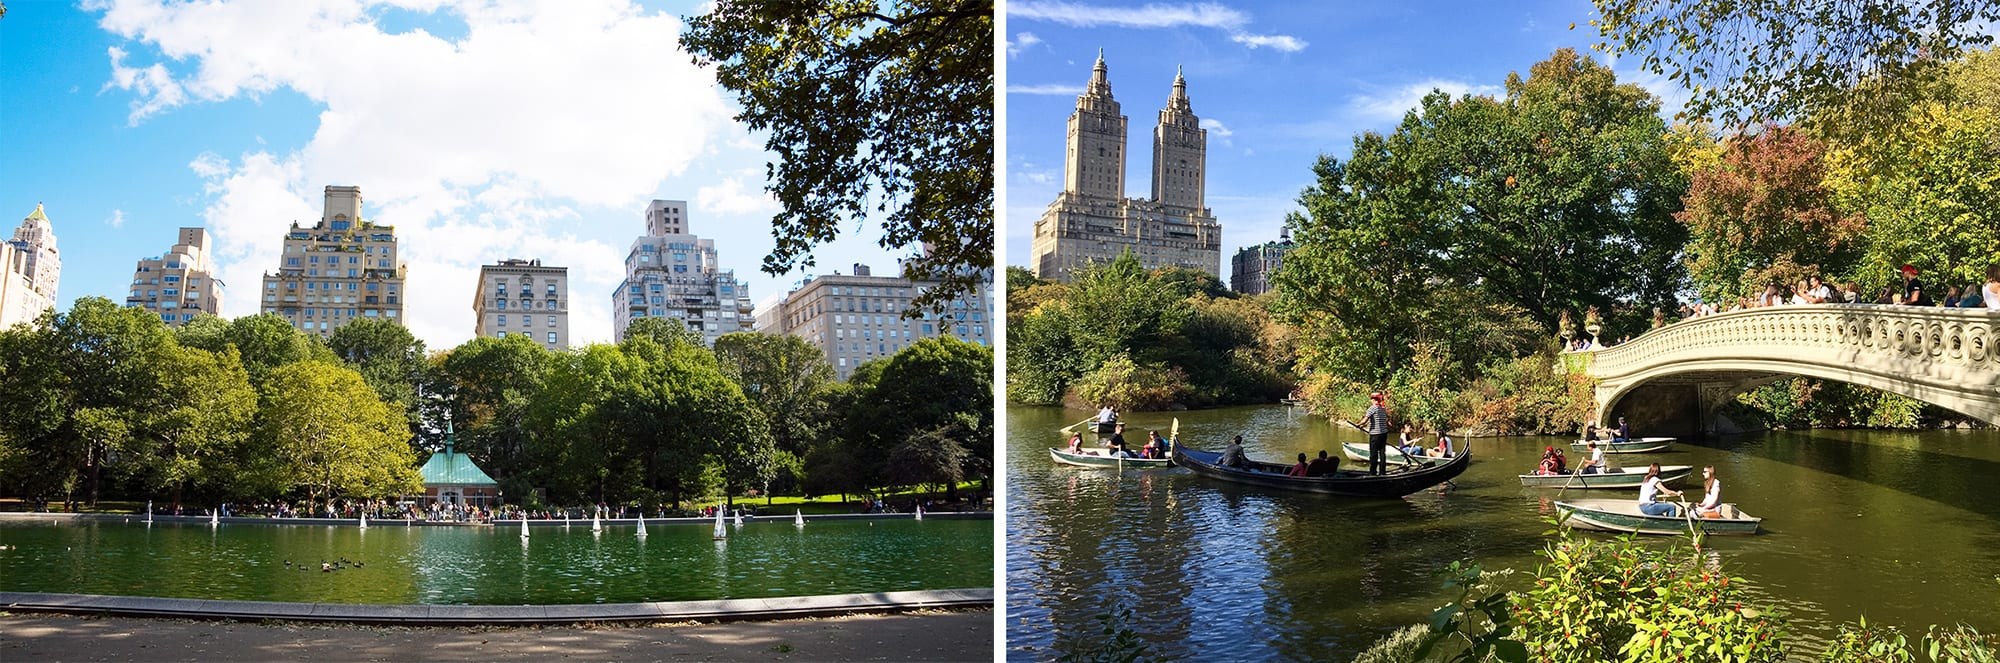 Things-to-do-in-Central-Park-Boating